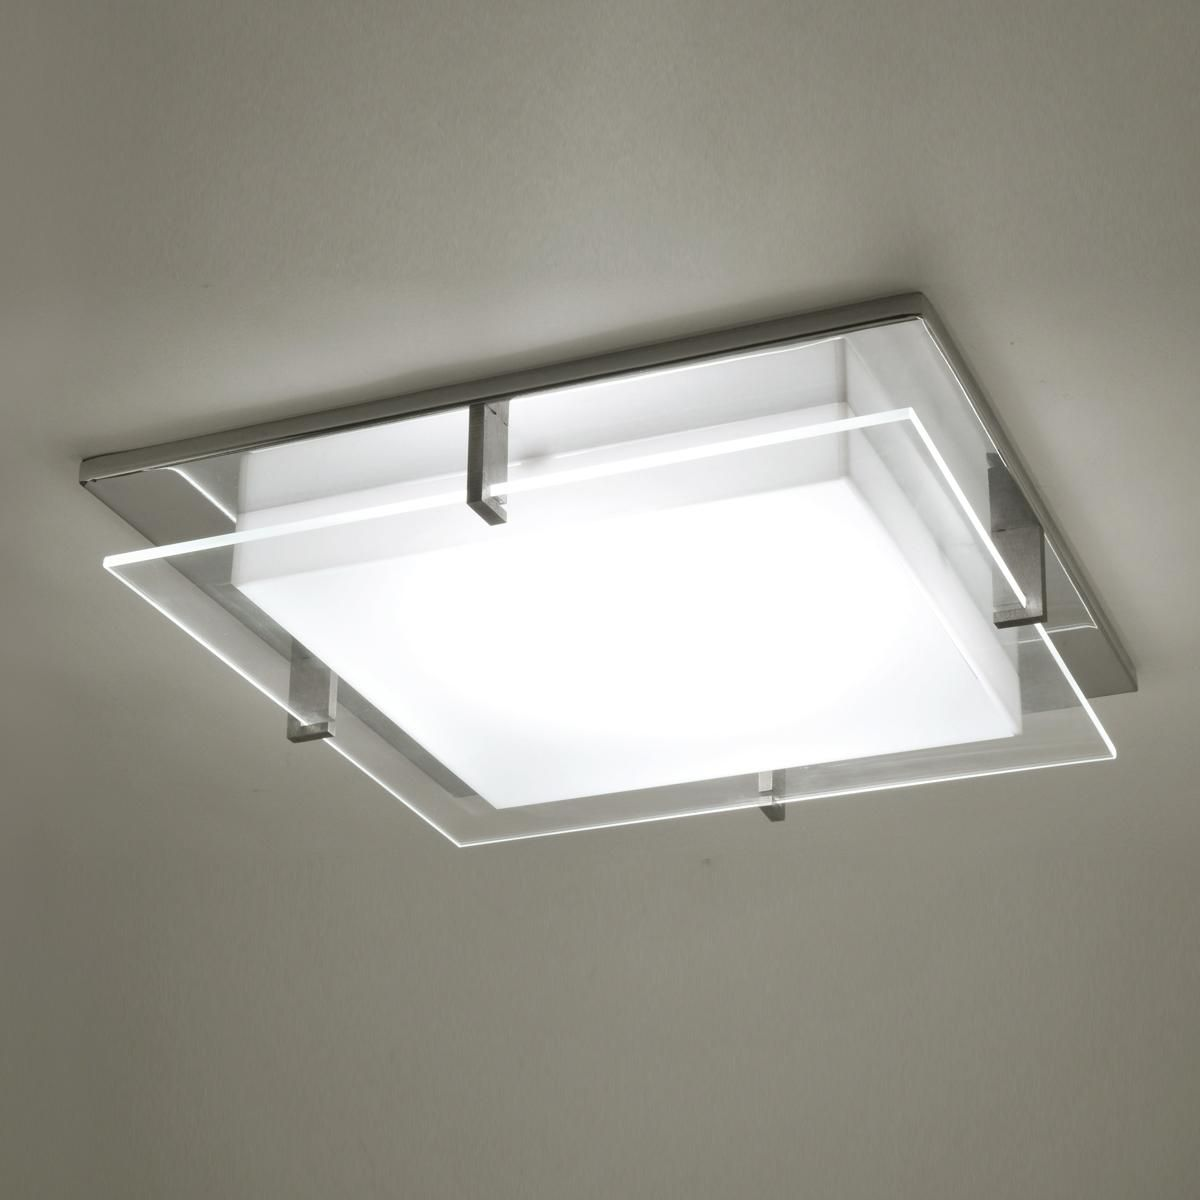 Decorative Recessed Light Covers Google Search Modern Recessed